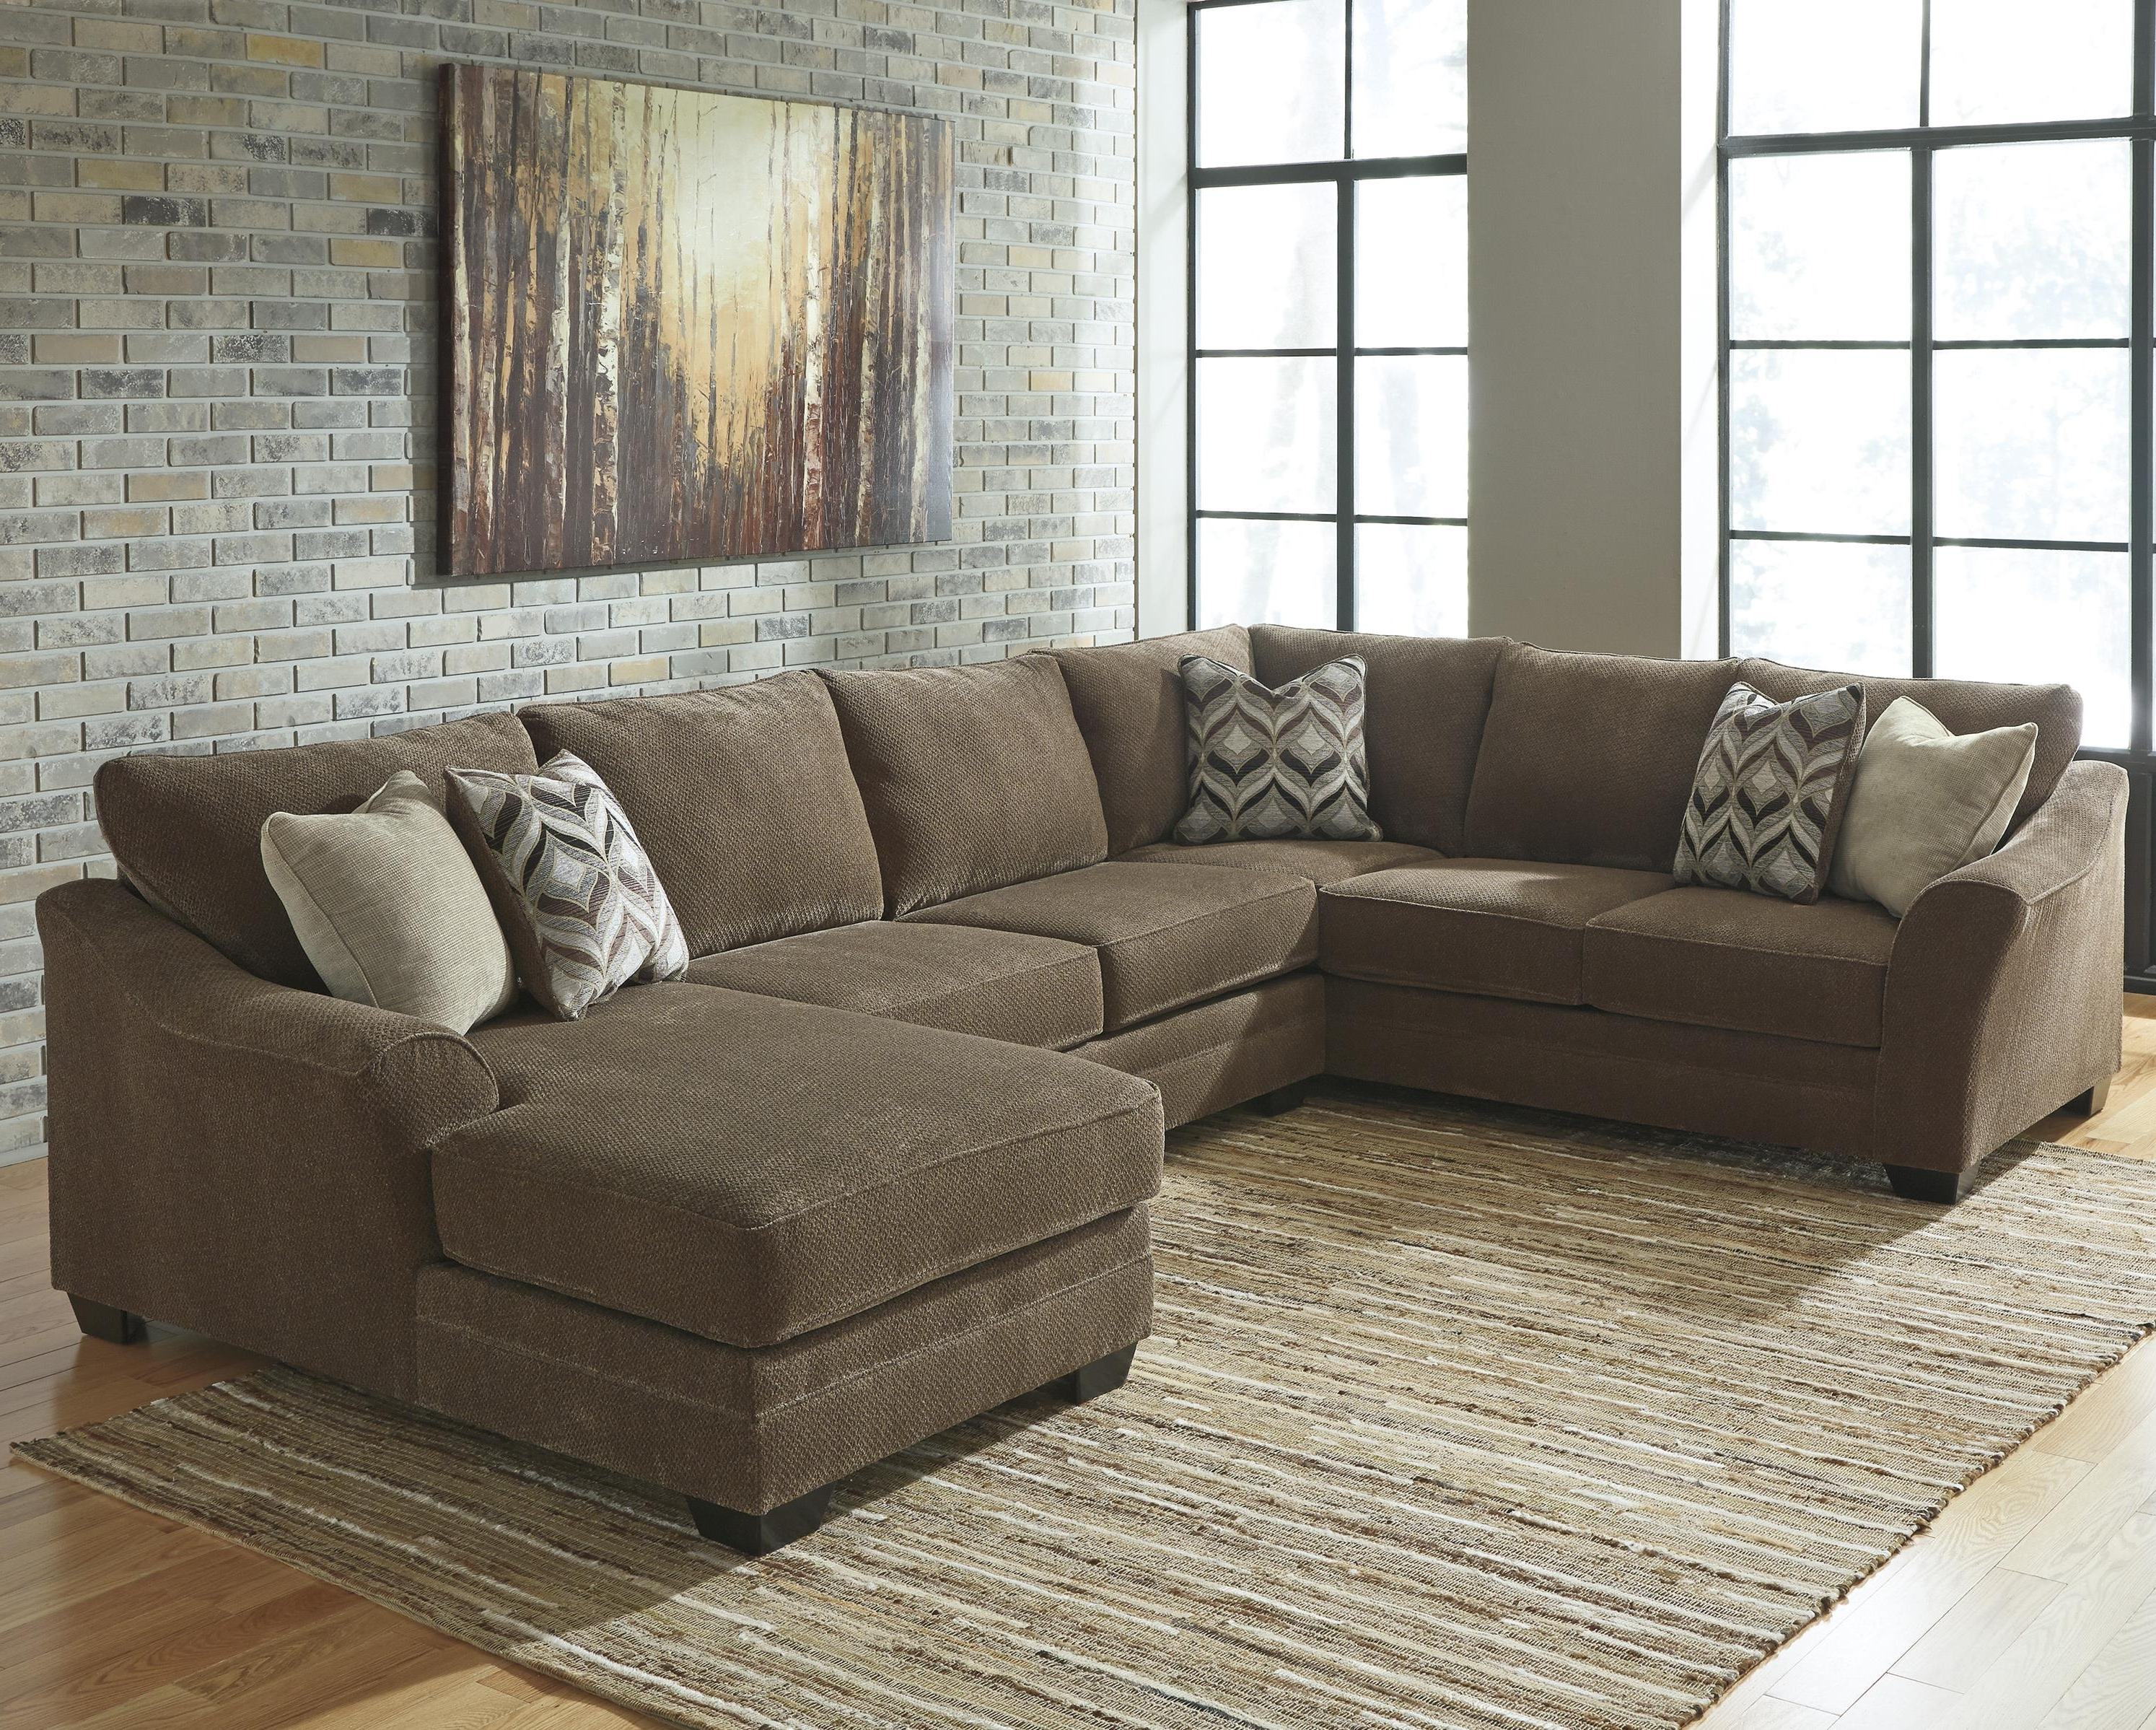 Clearance Sectional Sofas Within Newest Ethan Allen Sofas Clearance Sectional Couch With Recliner Big Lots (View 11 of 15)